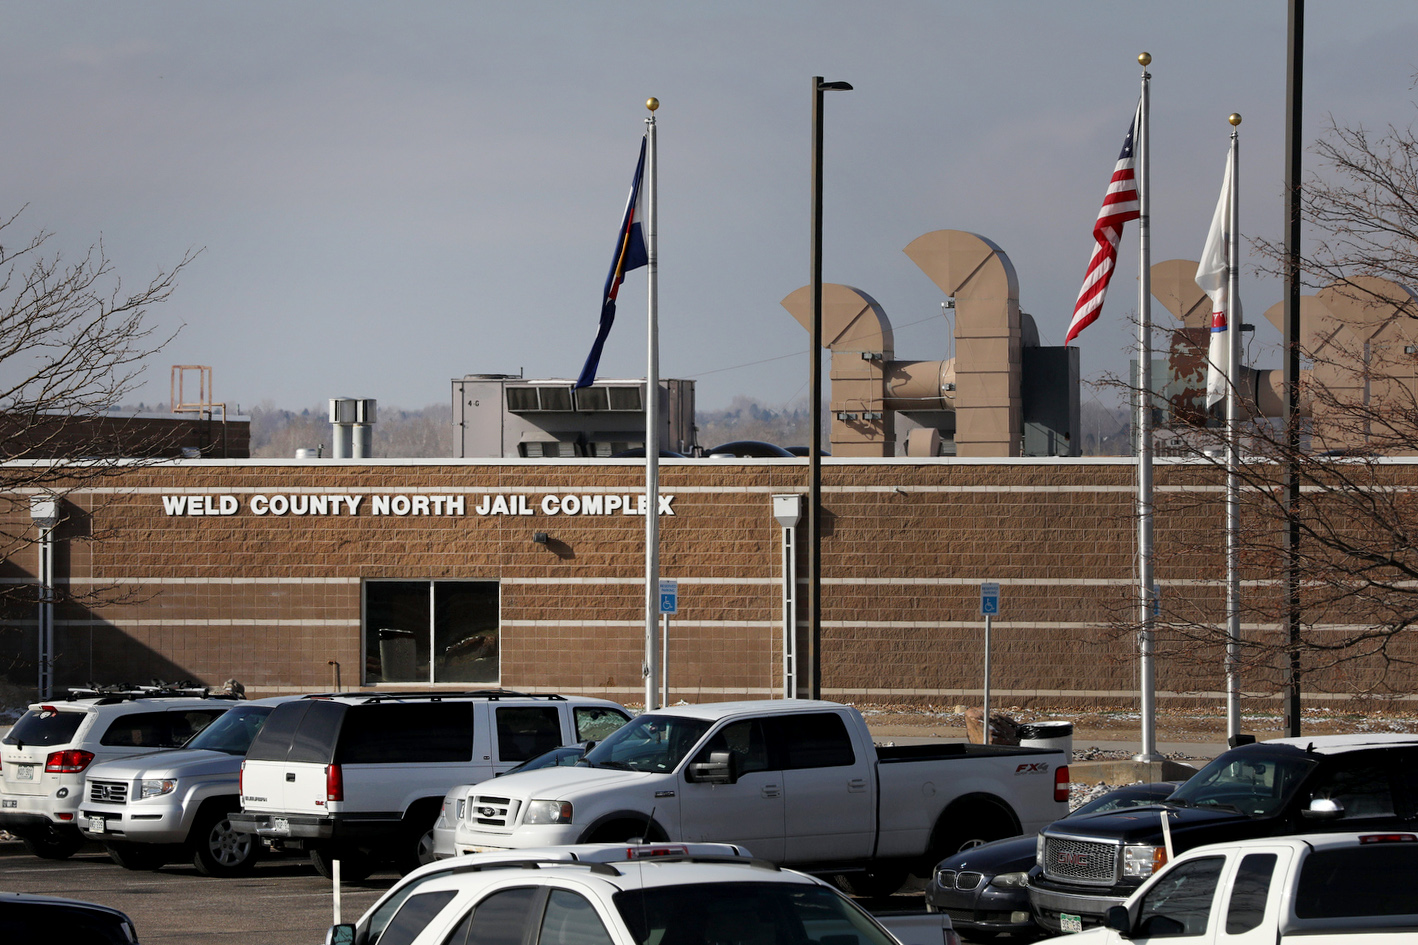 Weld County North Jail Complex in Greeley